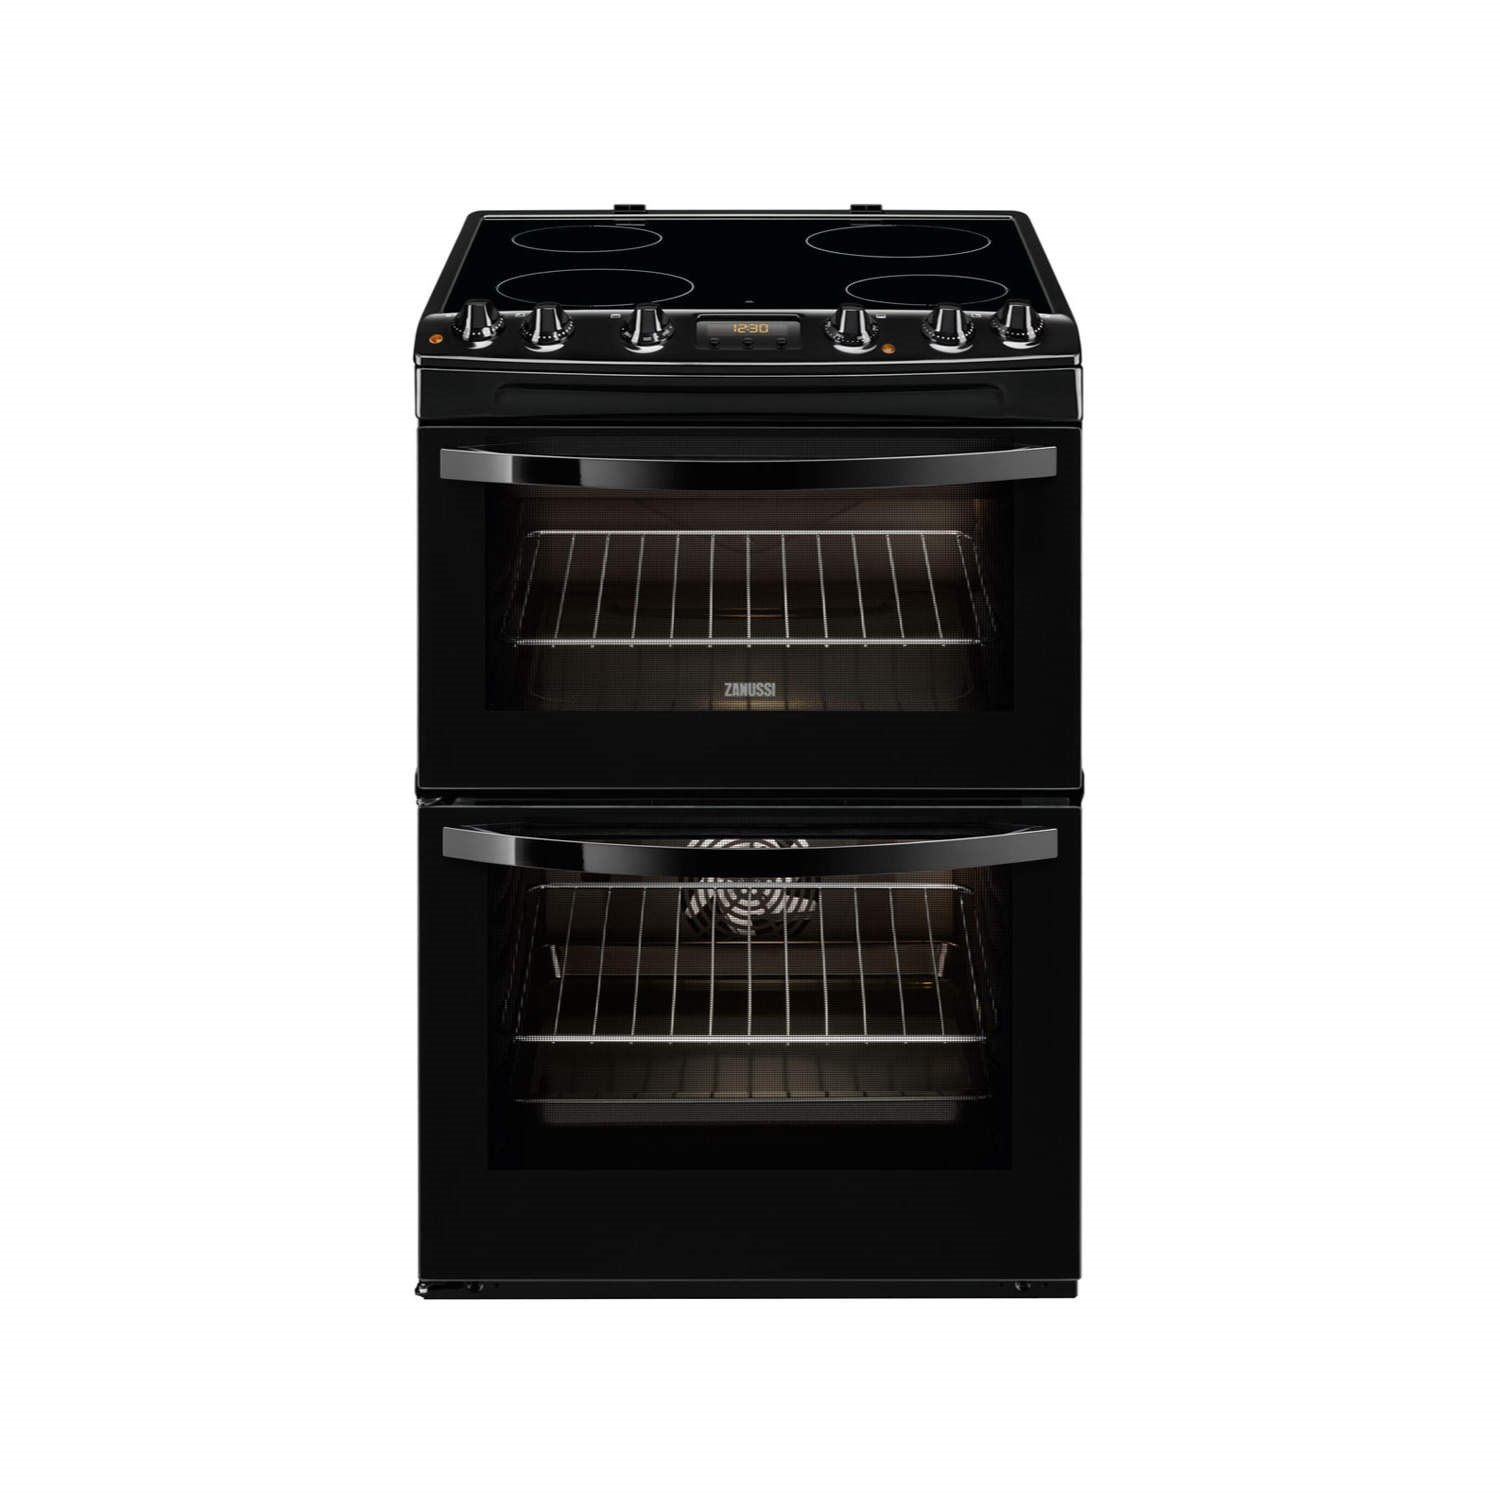 Wiring zanussi ceramic hob wire center zanussi zcv68300ba black 60cm double oven electric cooker with rh appliancesdirect co uk bosch ceramic hobs bosch ceramic hobs wiring diagram cheapraybanclubmaster Choice Image